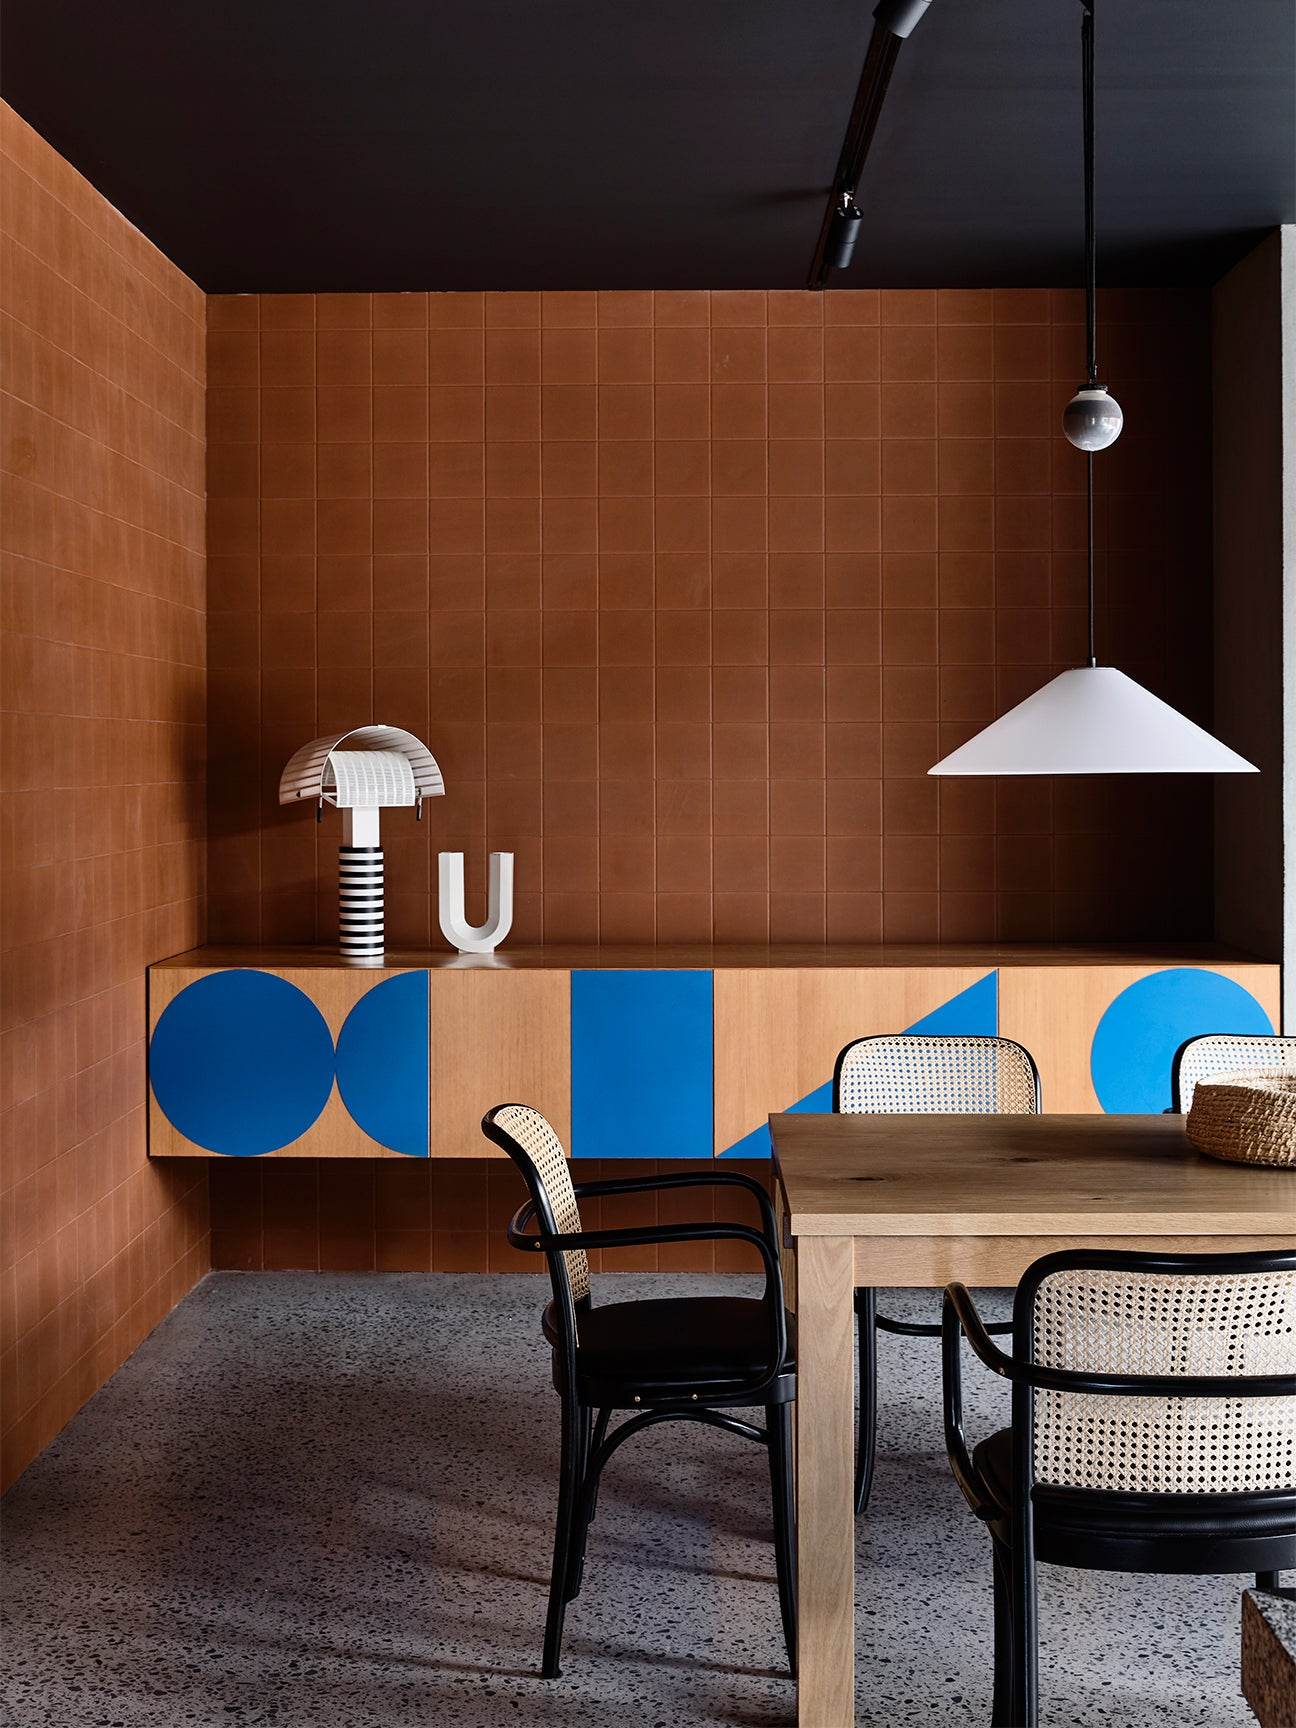 brown tiled walls in a dining room